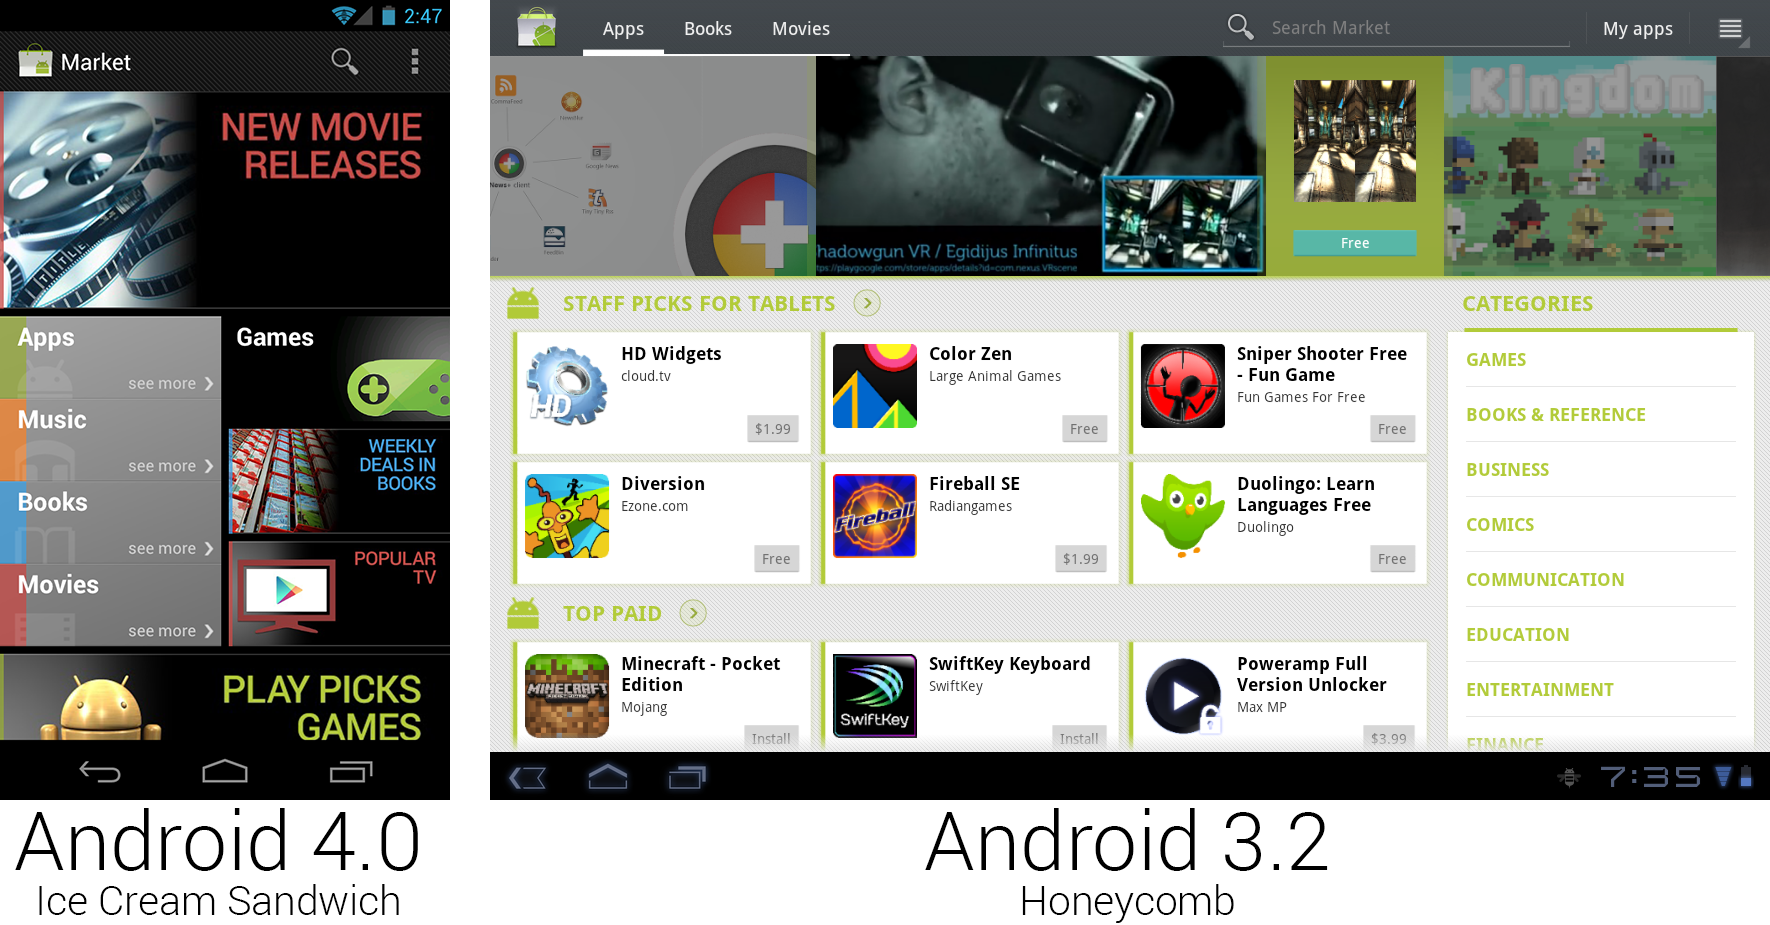 The main page of the Android Market changed back to black.